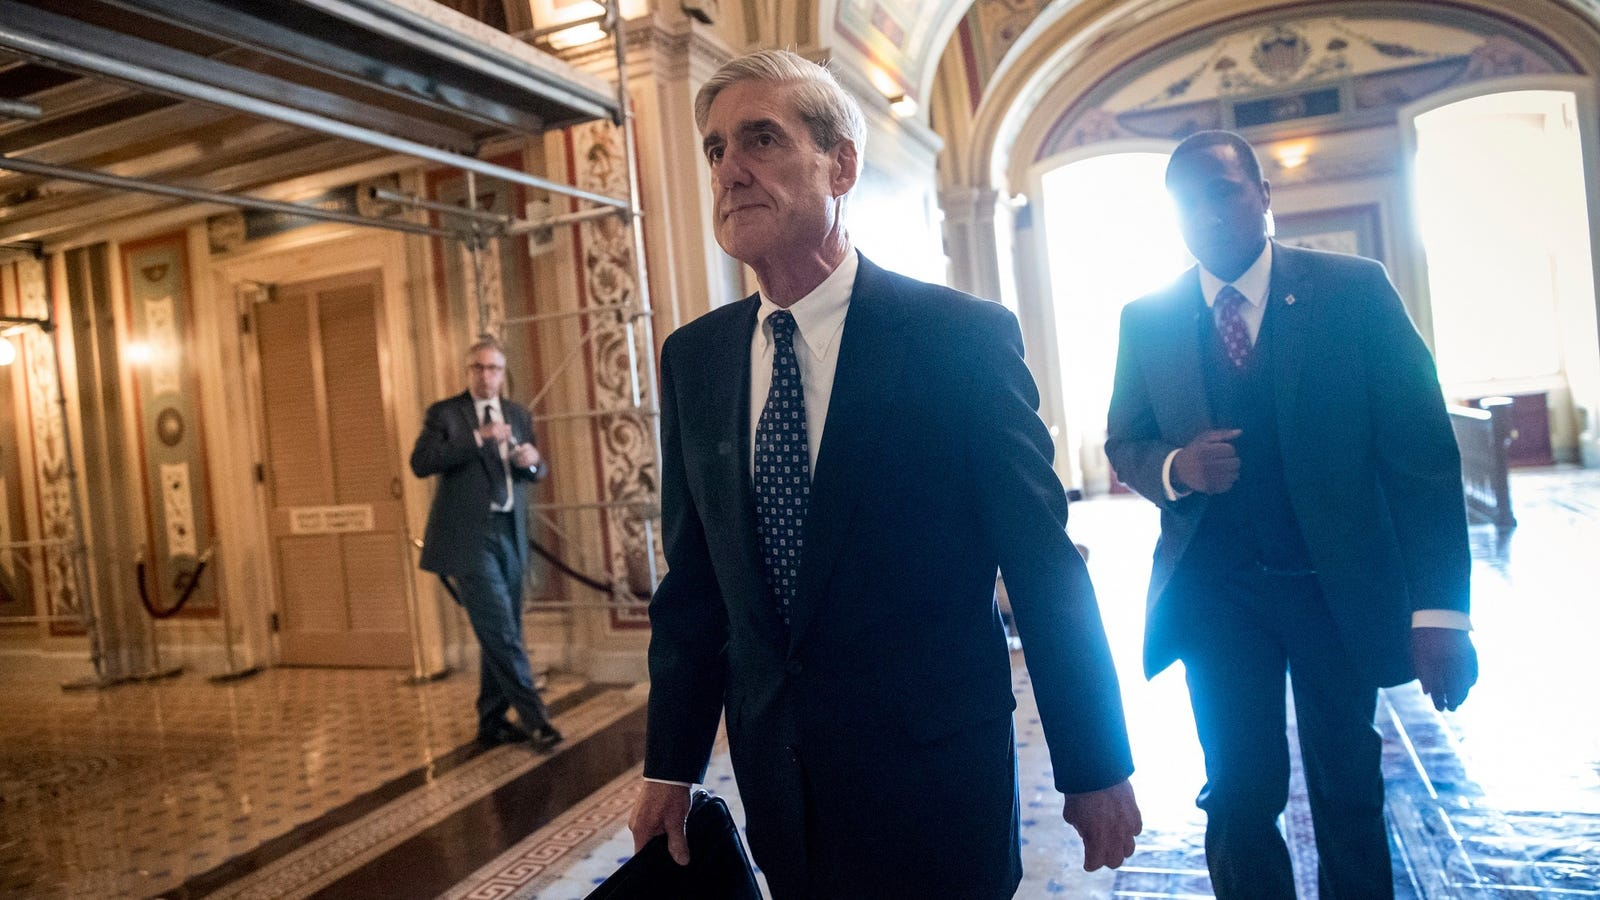 Robert Mueller Got Trump Transition Emails Just By Asking the Federal Agency That Hosted Them